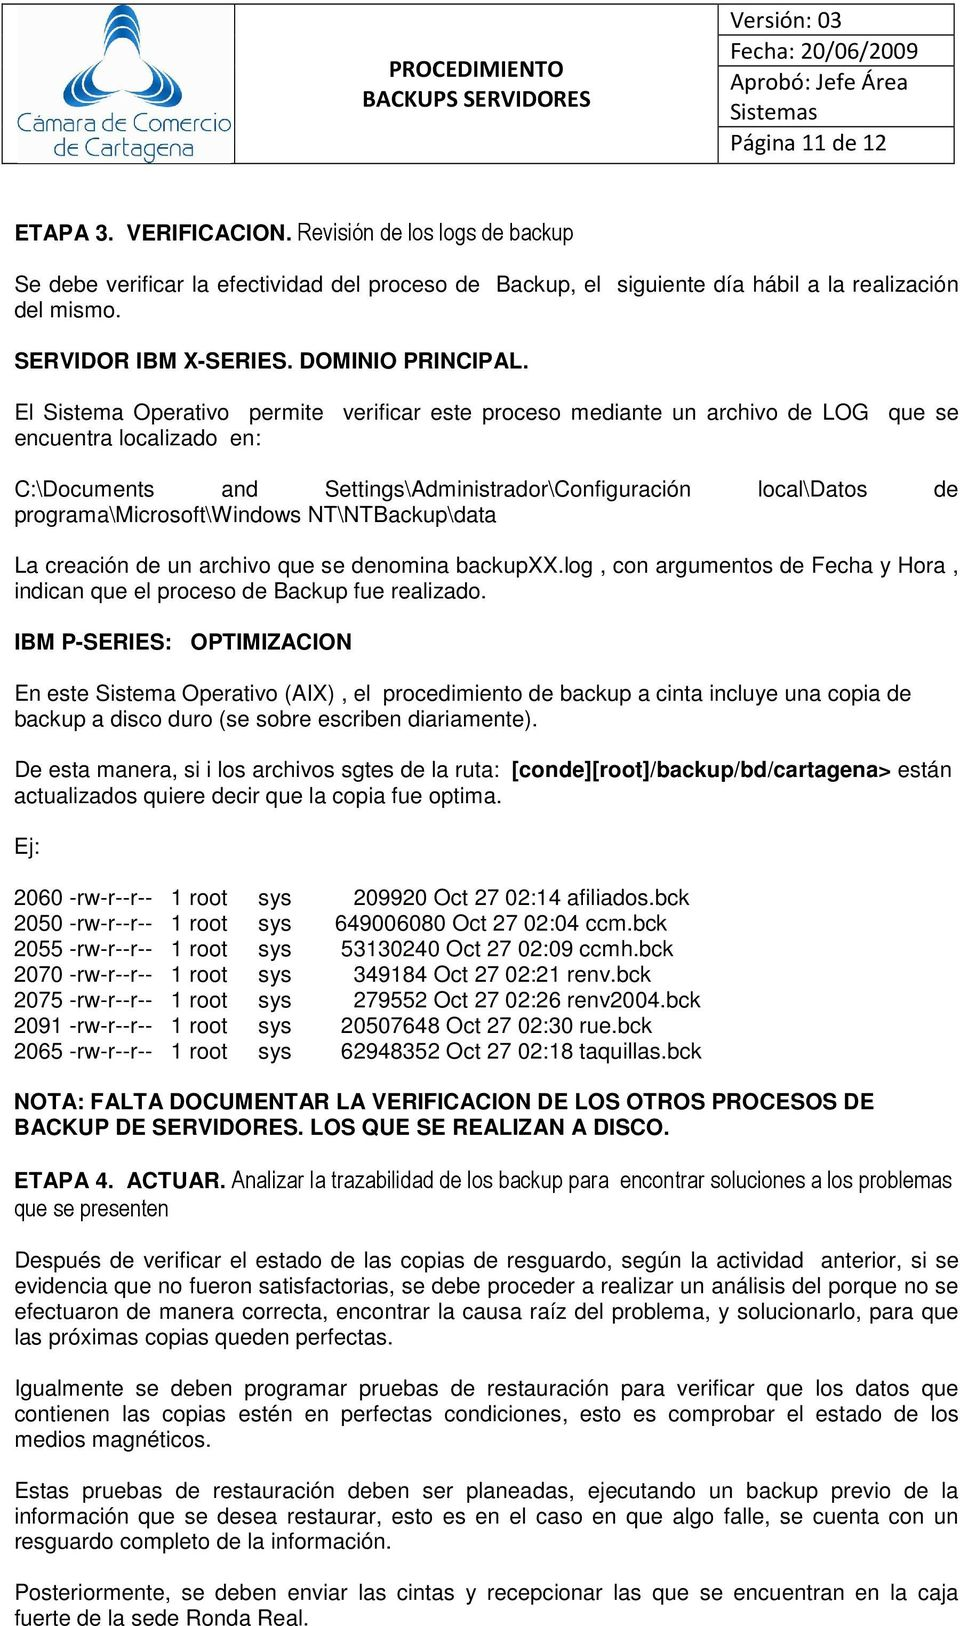 El Sistema Operativo permite verificar este proceso mediante un archivo de LOG que se encuentra localizado en: C:\Documents and Settings\Administrador\Configuración local\datos de